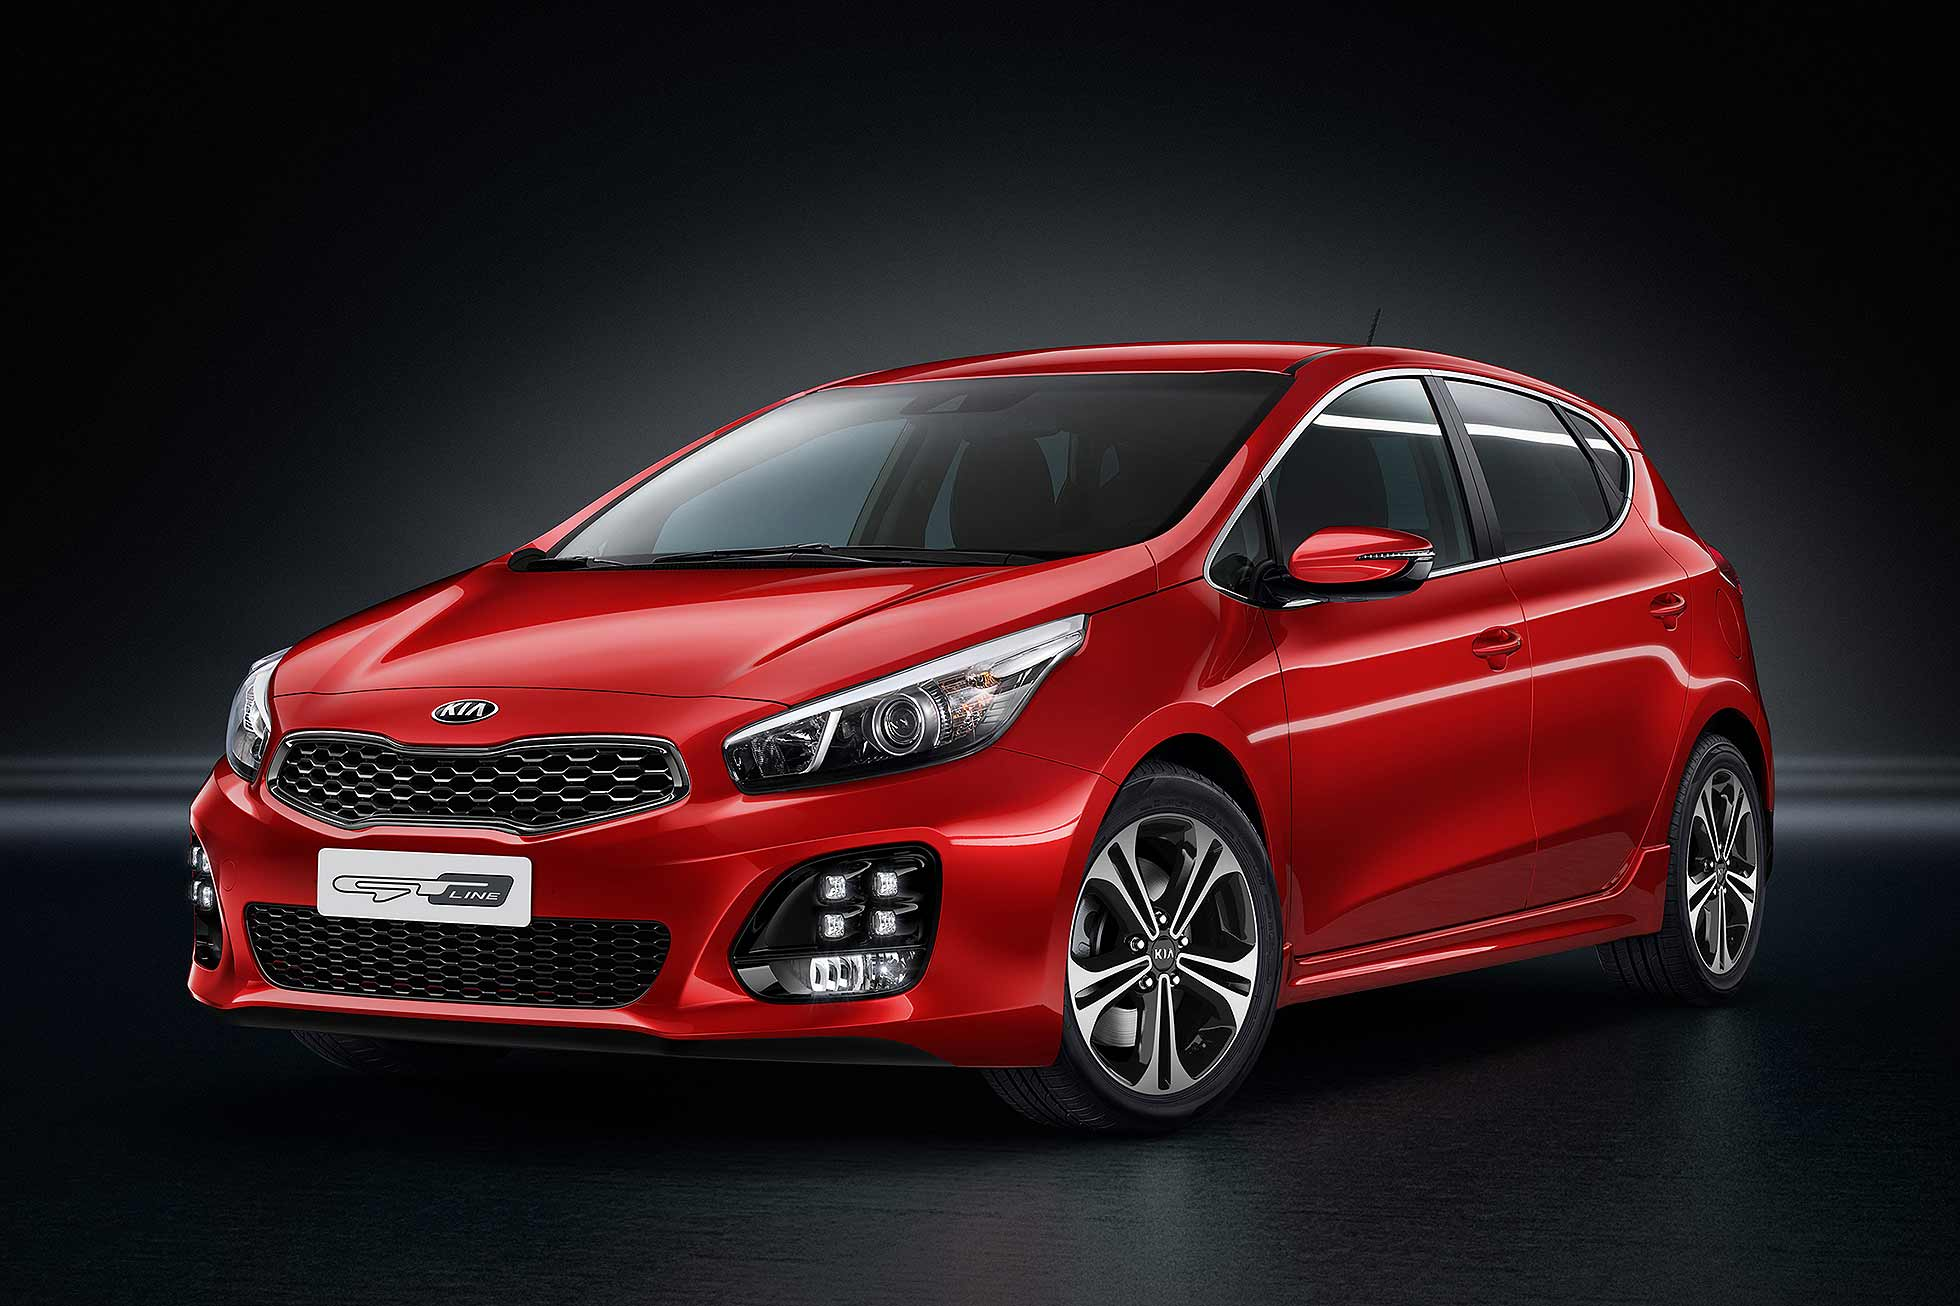 2015 kia cee 39 d gt line 1 0 litre turbo revealed motoring research. Black Bedroom Furniture Sets. Home Design Ideas